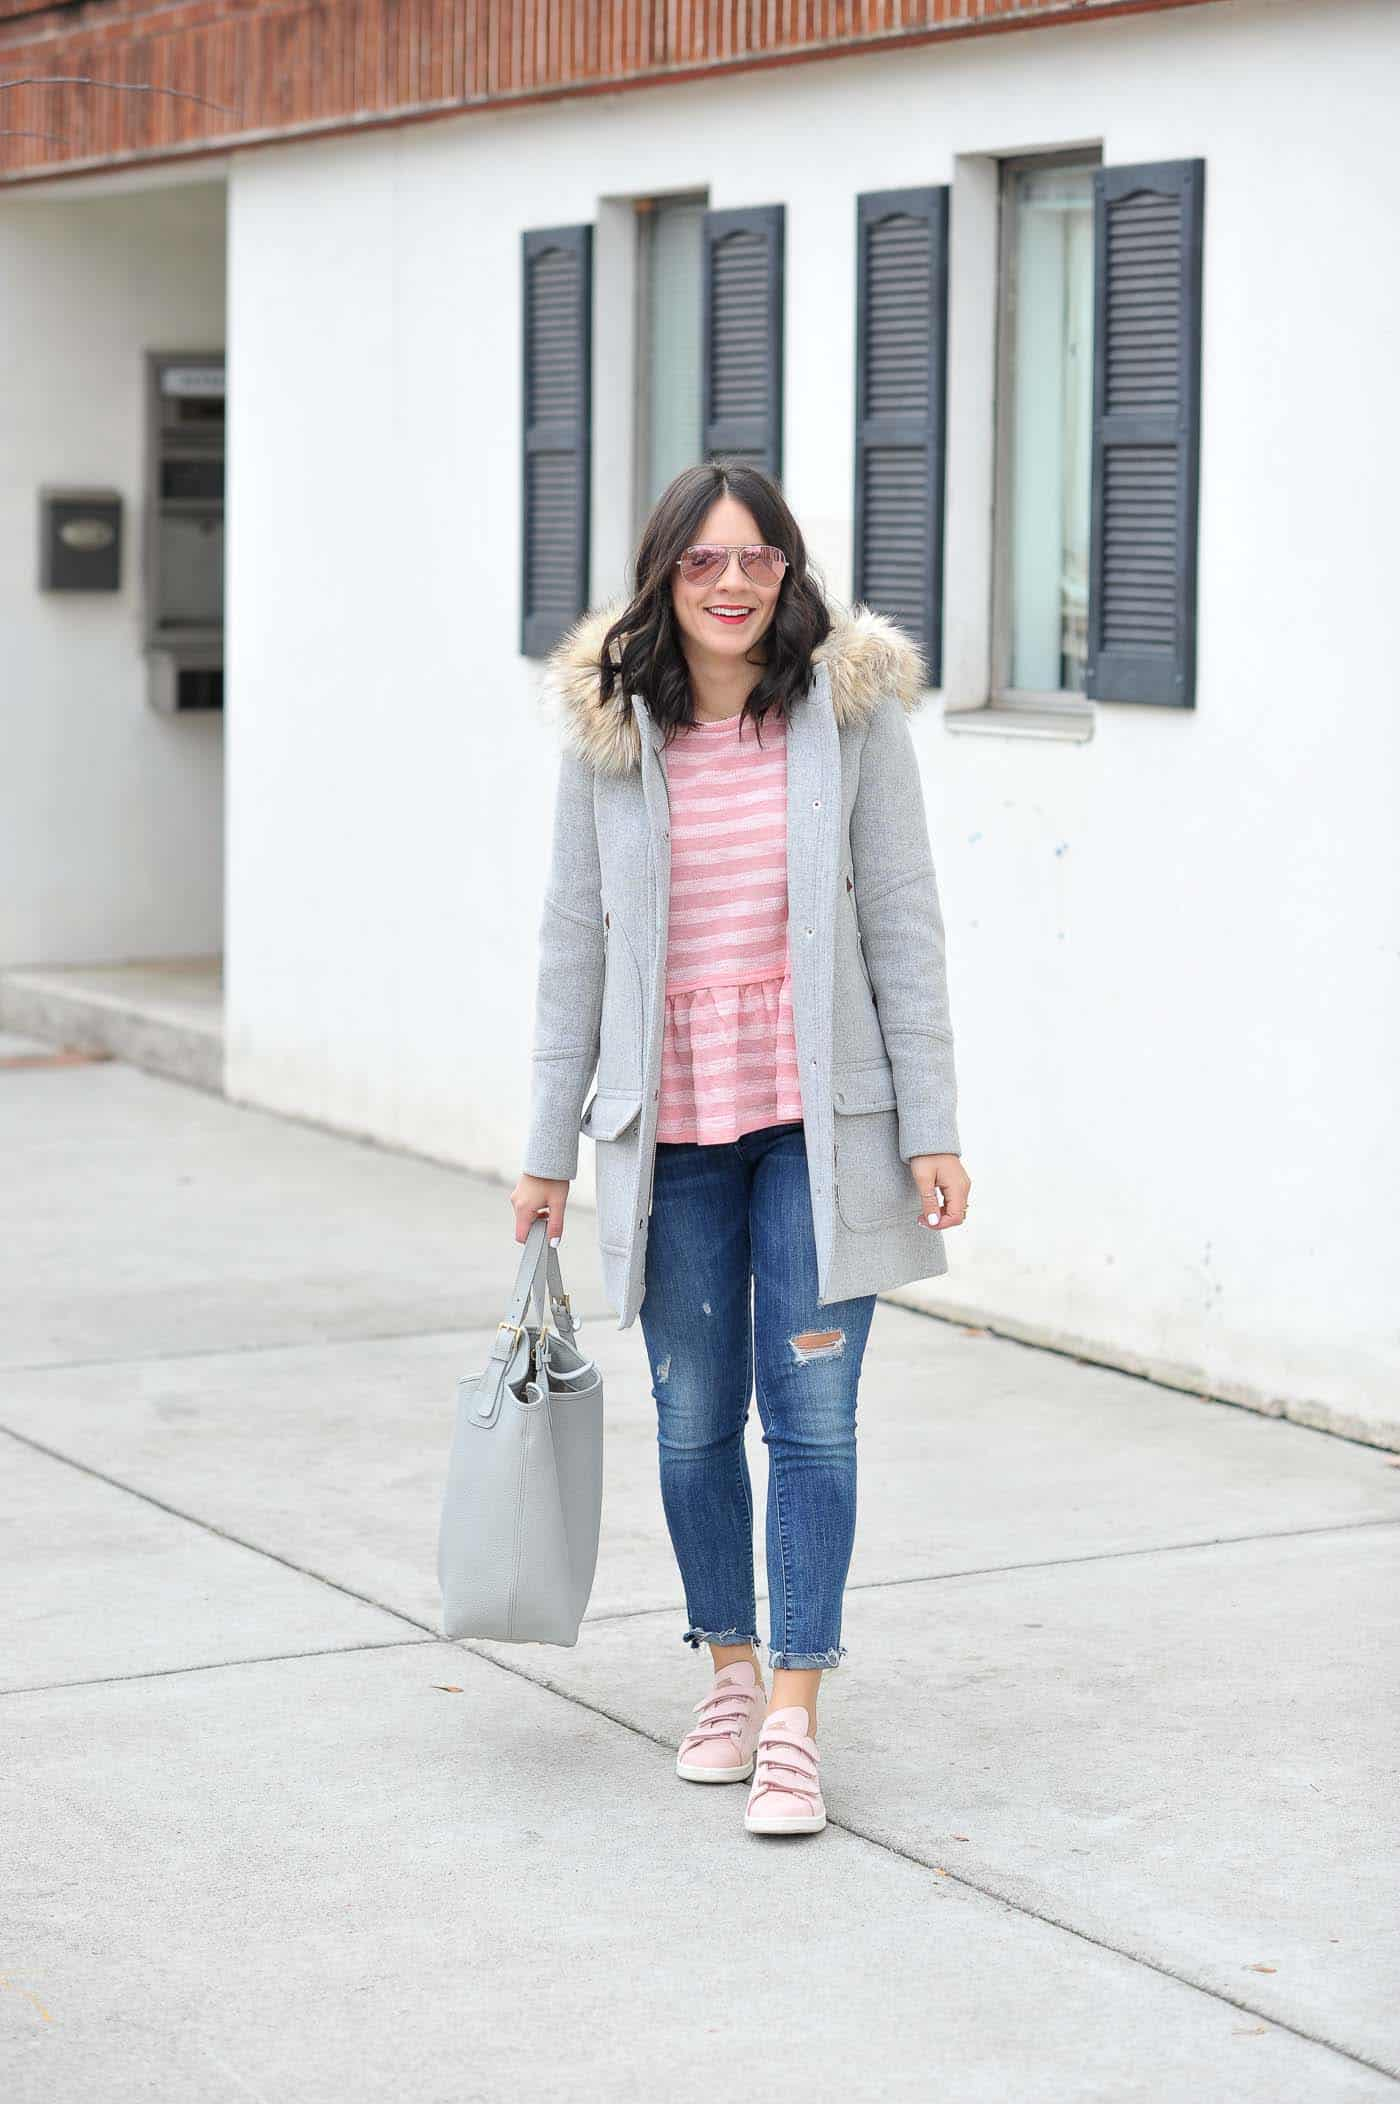 509469627e62 All Things Girly - Pink Casual Outfit Idea - My Style Vita